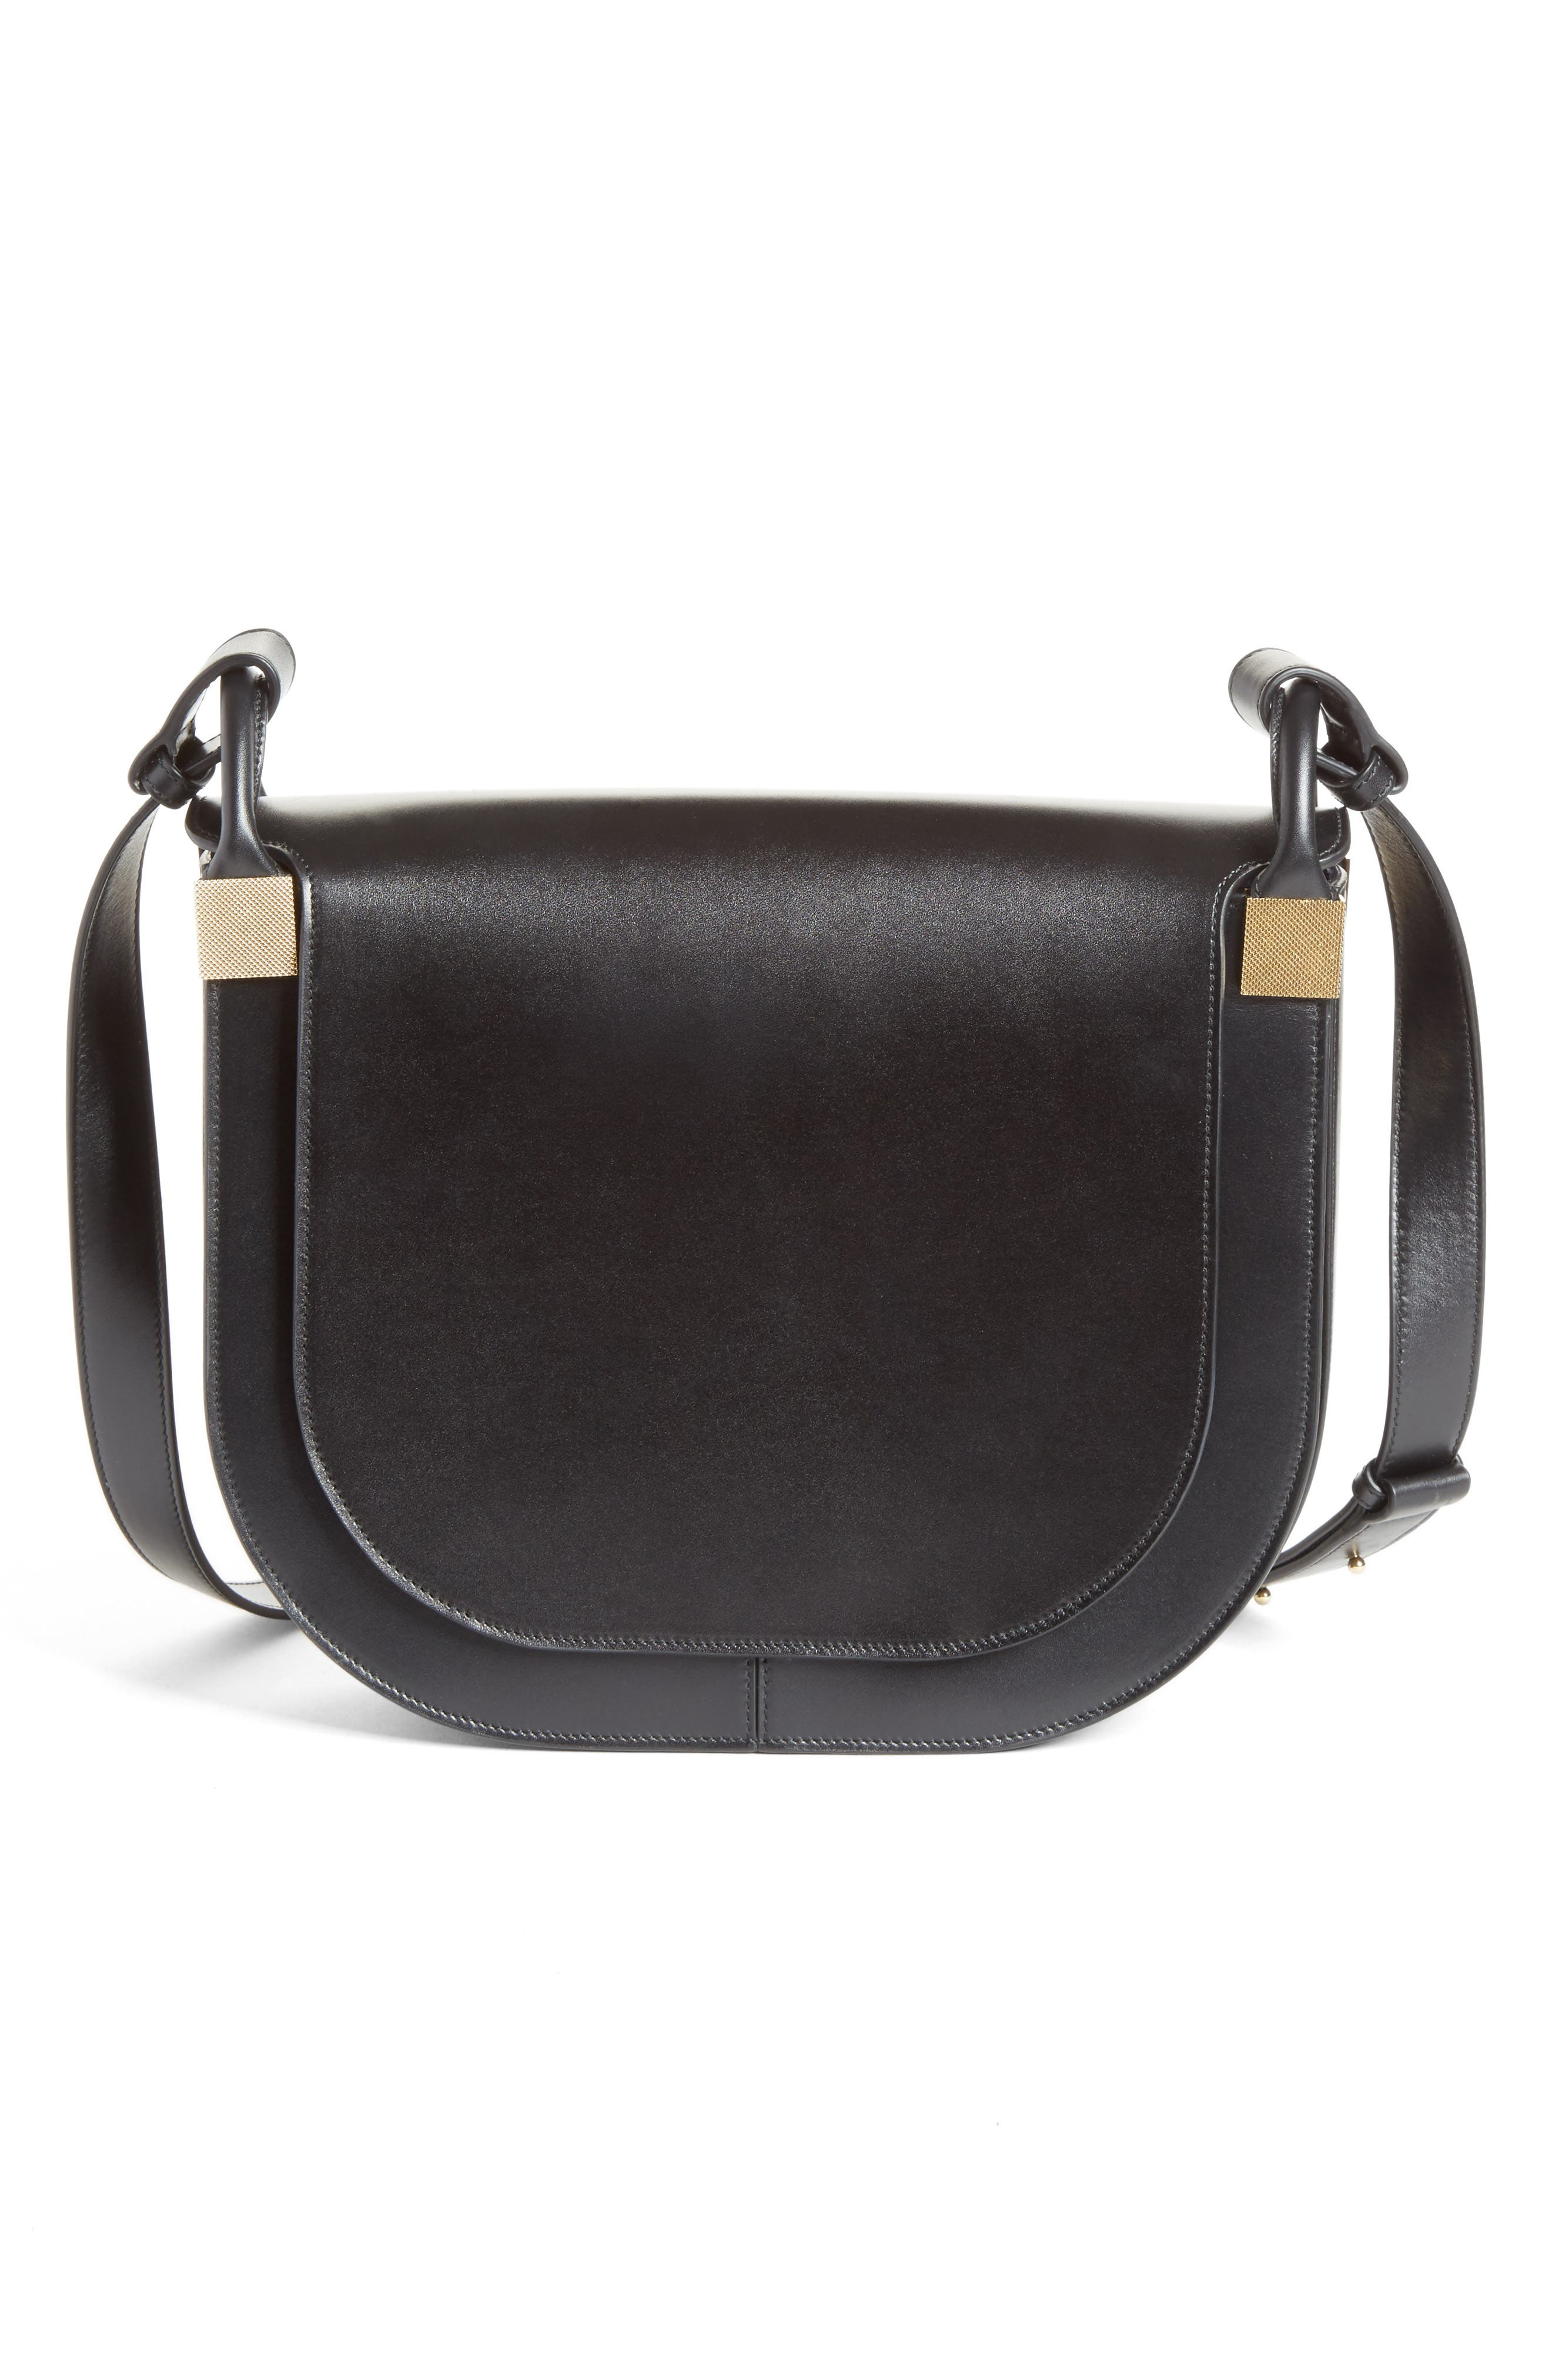 Victoria Beckham Half Moon Box Crossbody Bag